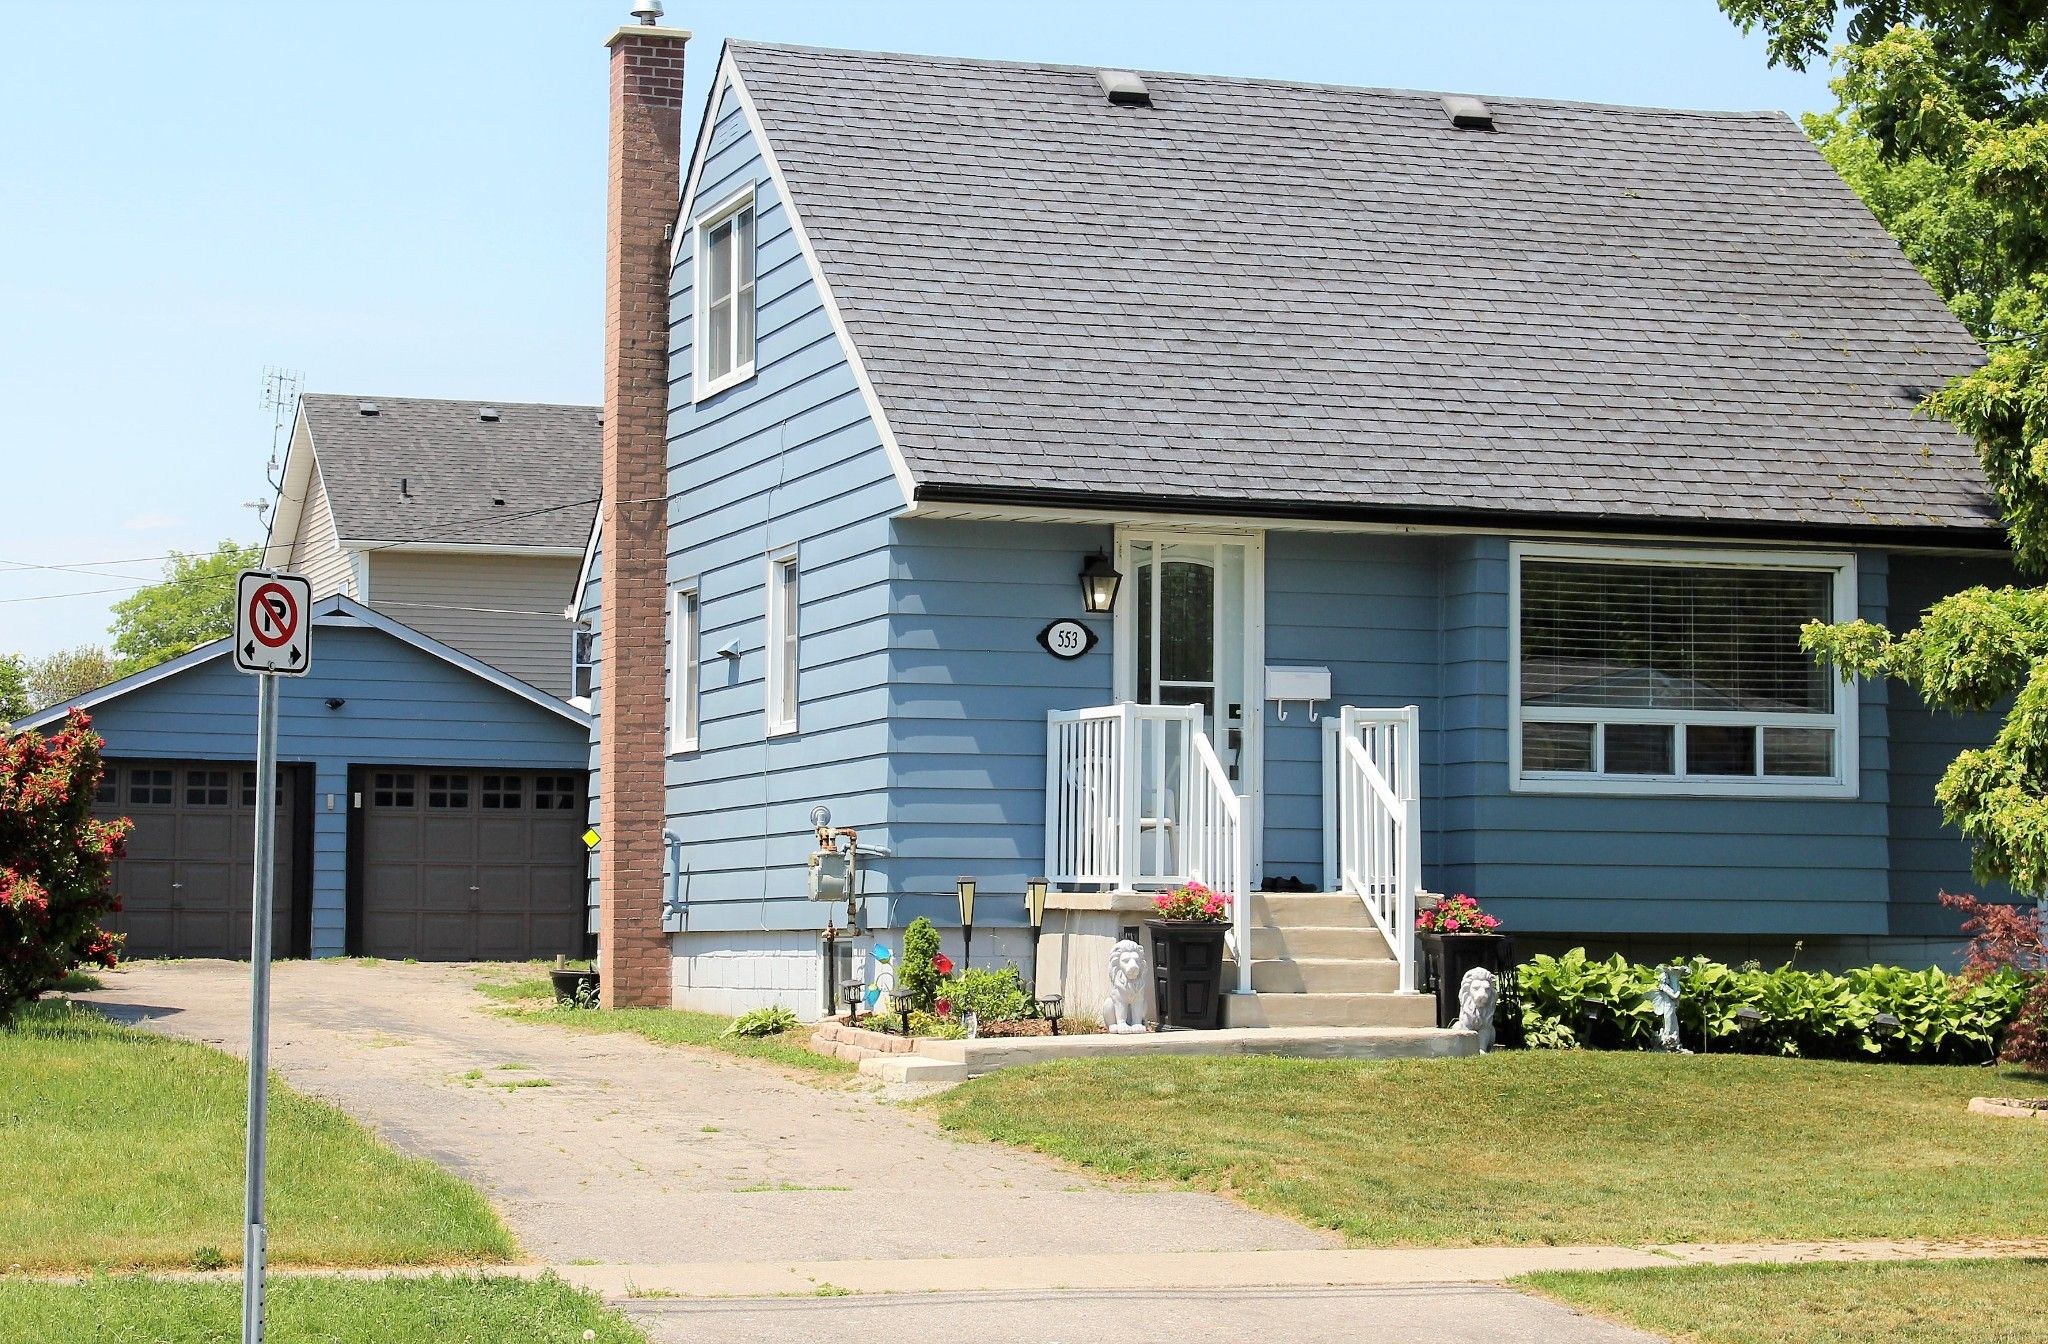 Main Photo: 553 Sinclair Street in Cobourg: House for sale : MLS®# X5268323